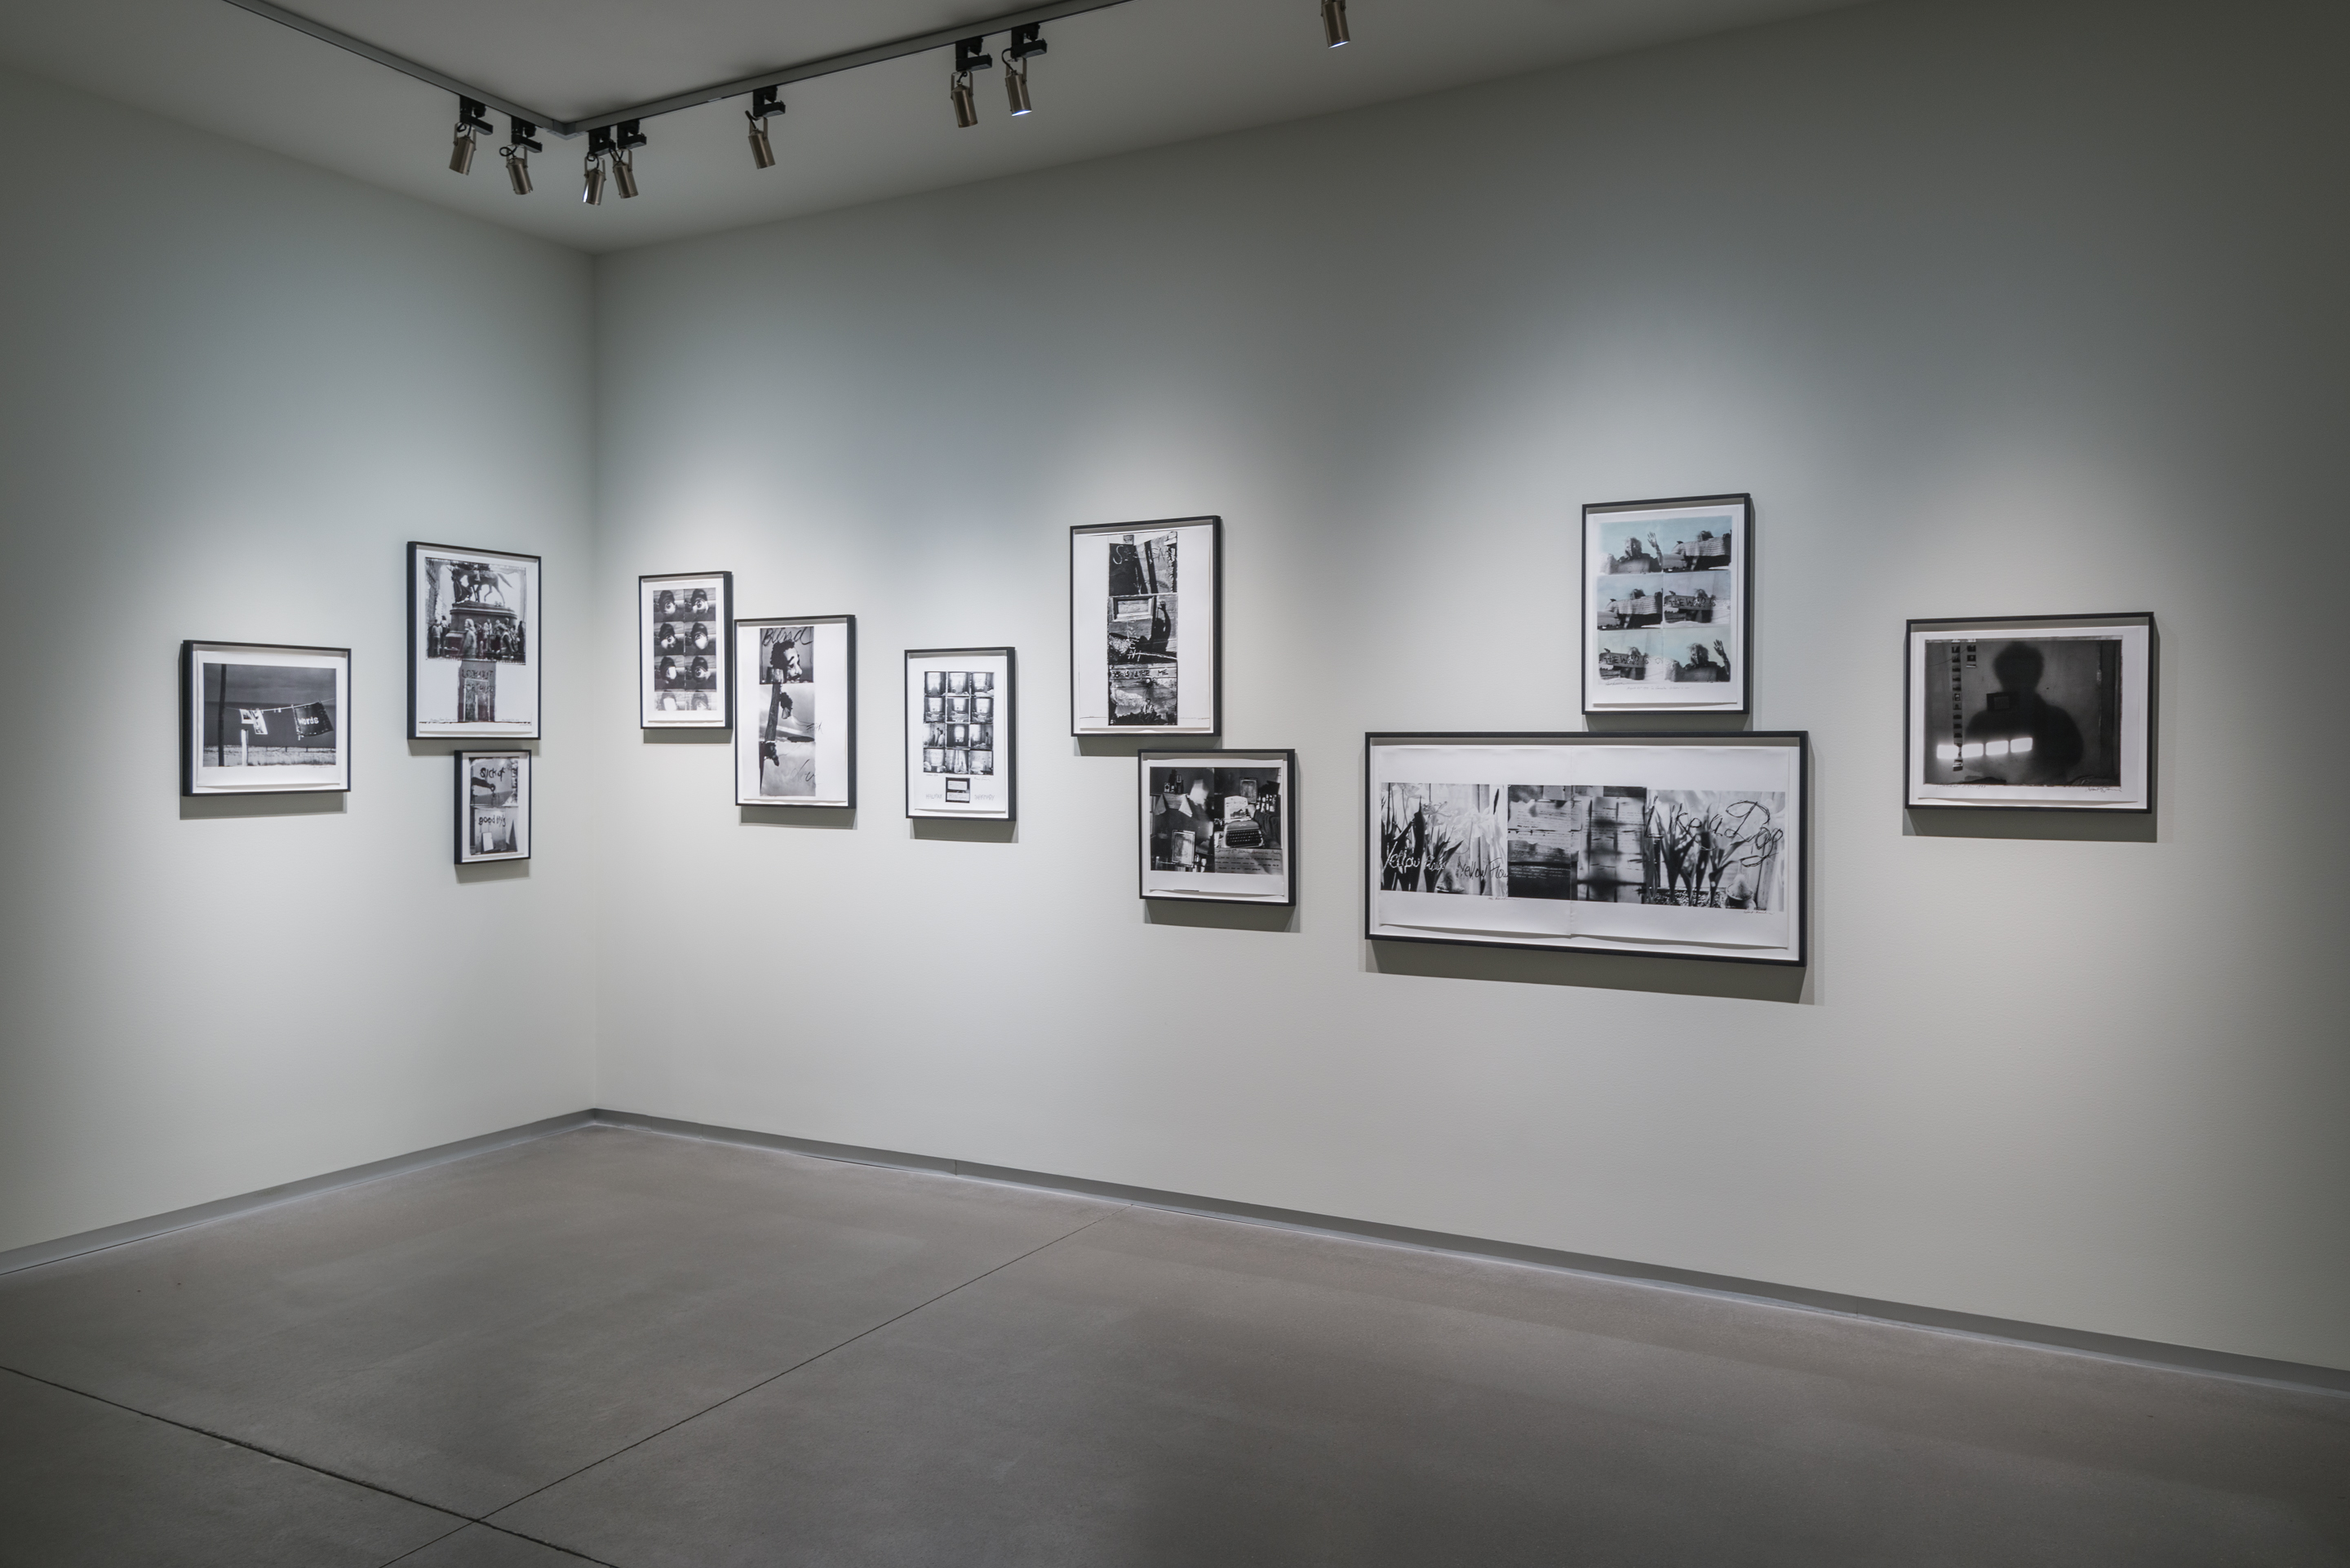 Installation View, photography from the Bluff Collection on view in Collected at Pier 24 Photography, San Francisco, 2016. Courtesy of Pier 24 Photography.